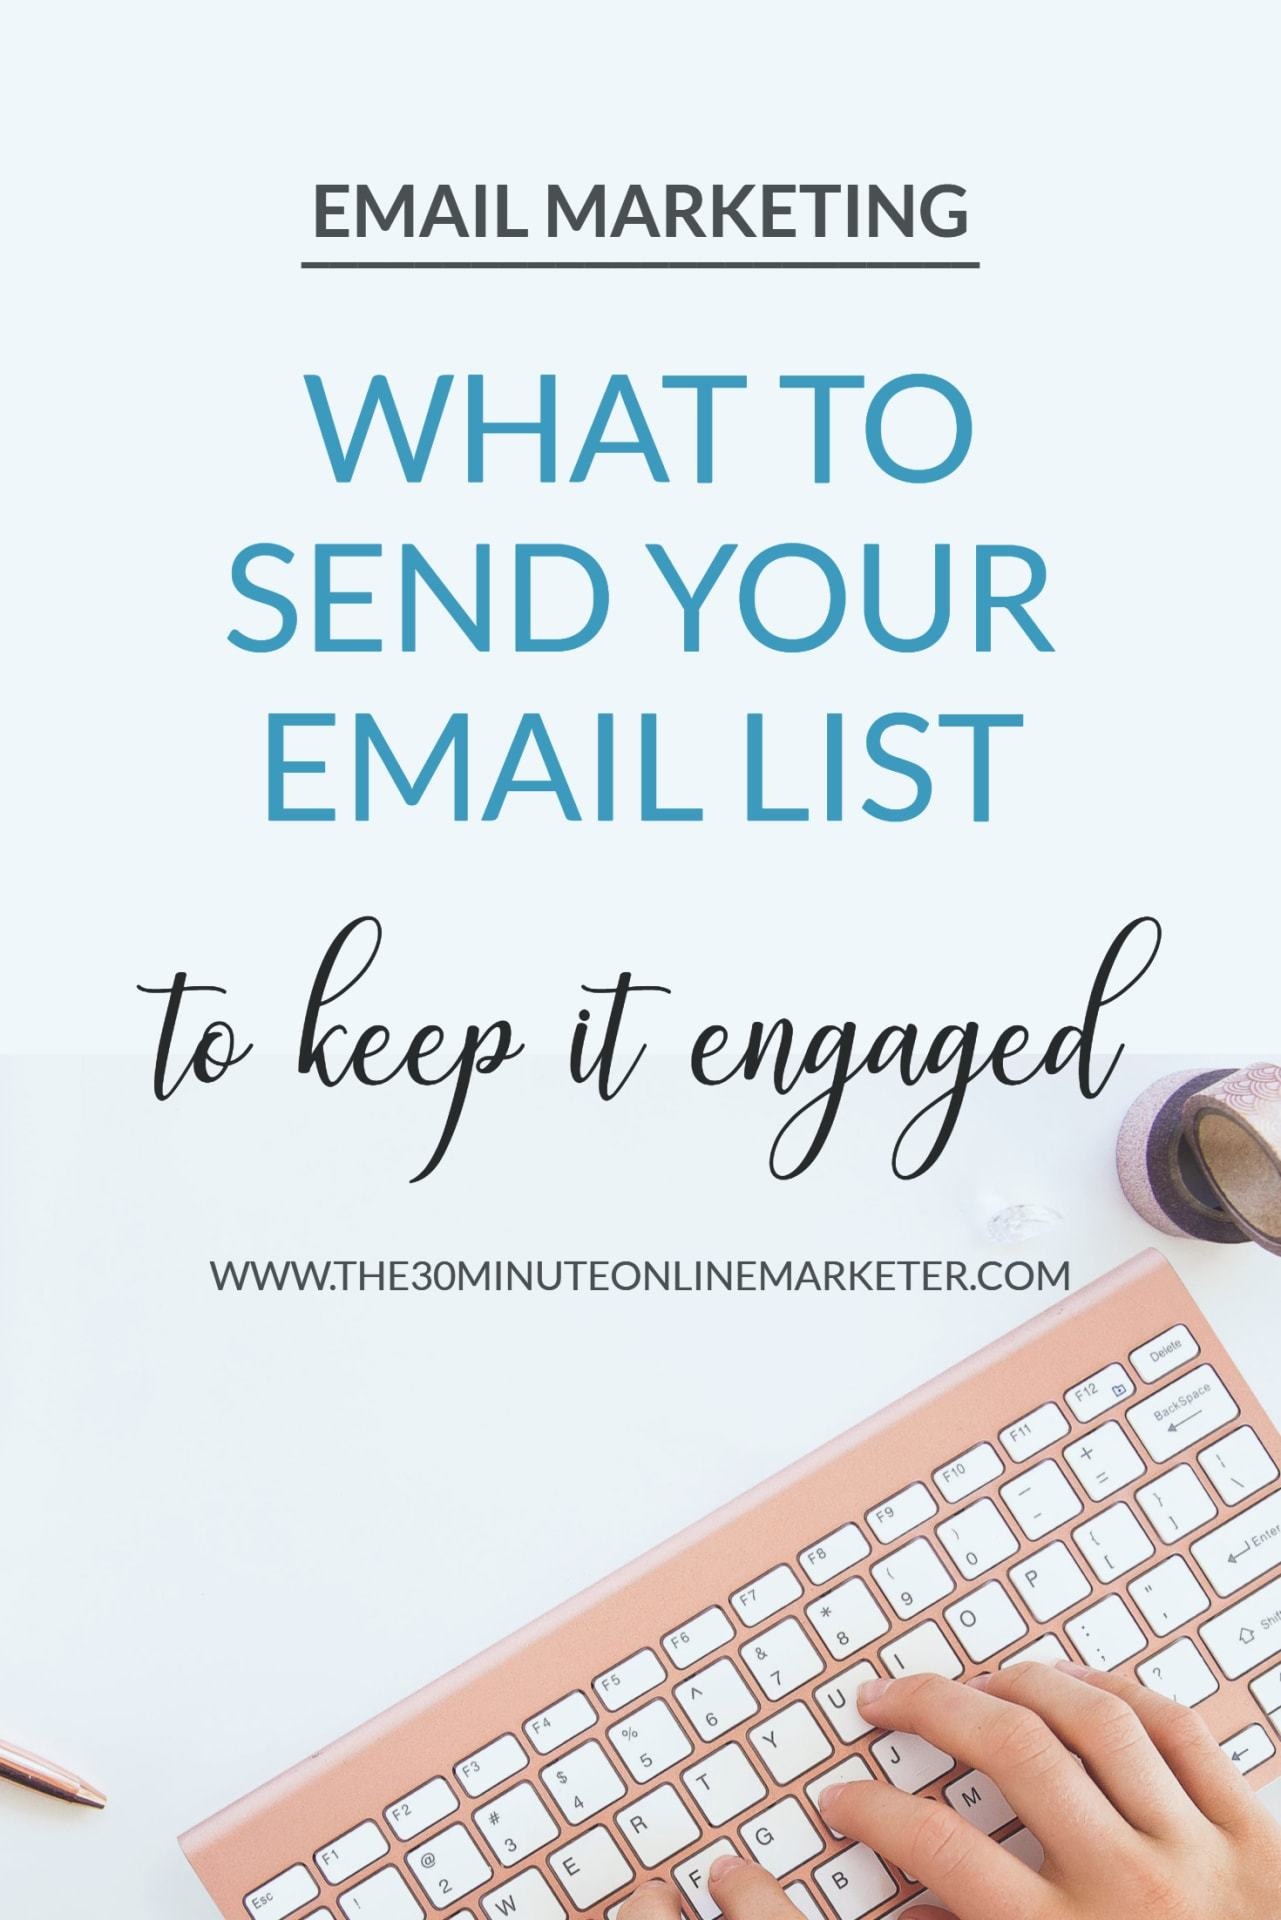 What to send your email list to keep it engaged